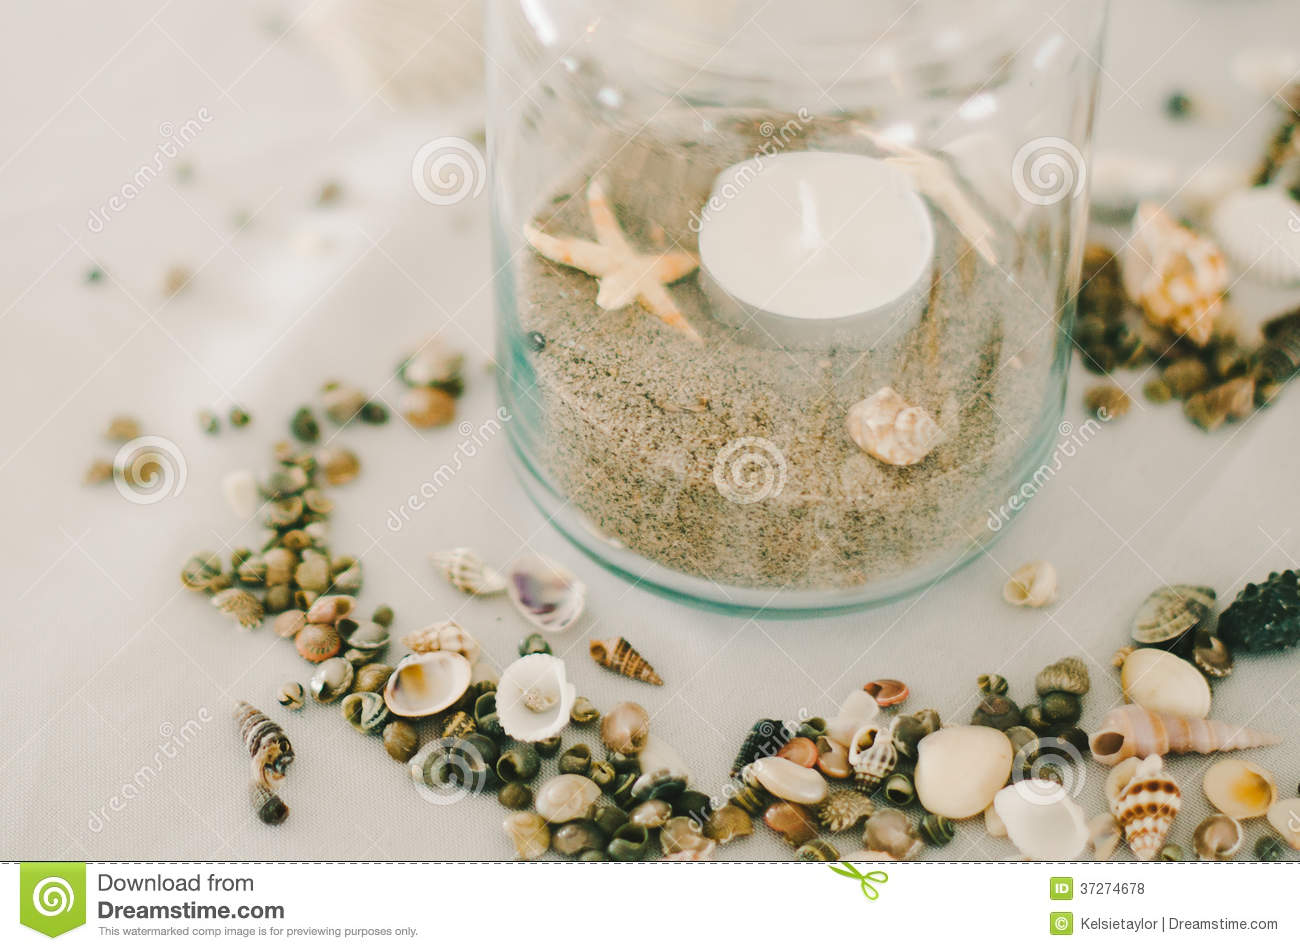 Jar of sand amp shells royalty free stock photos image 37274678